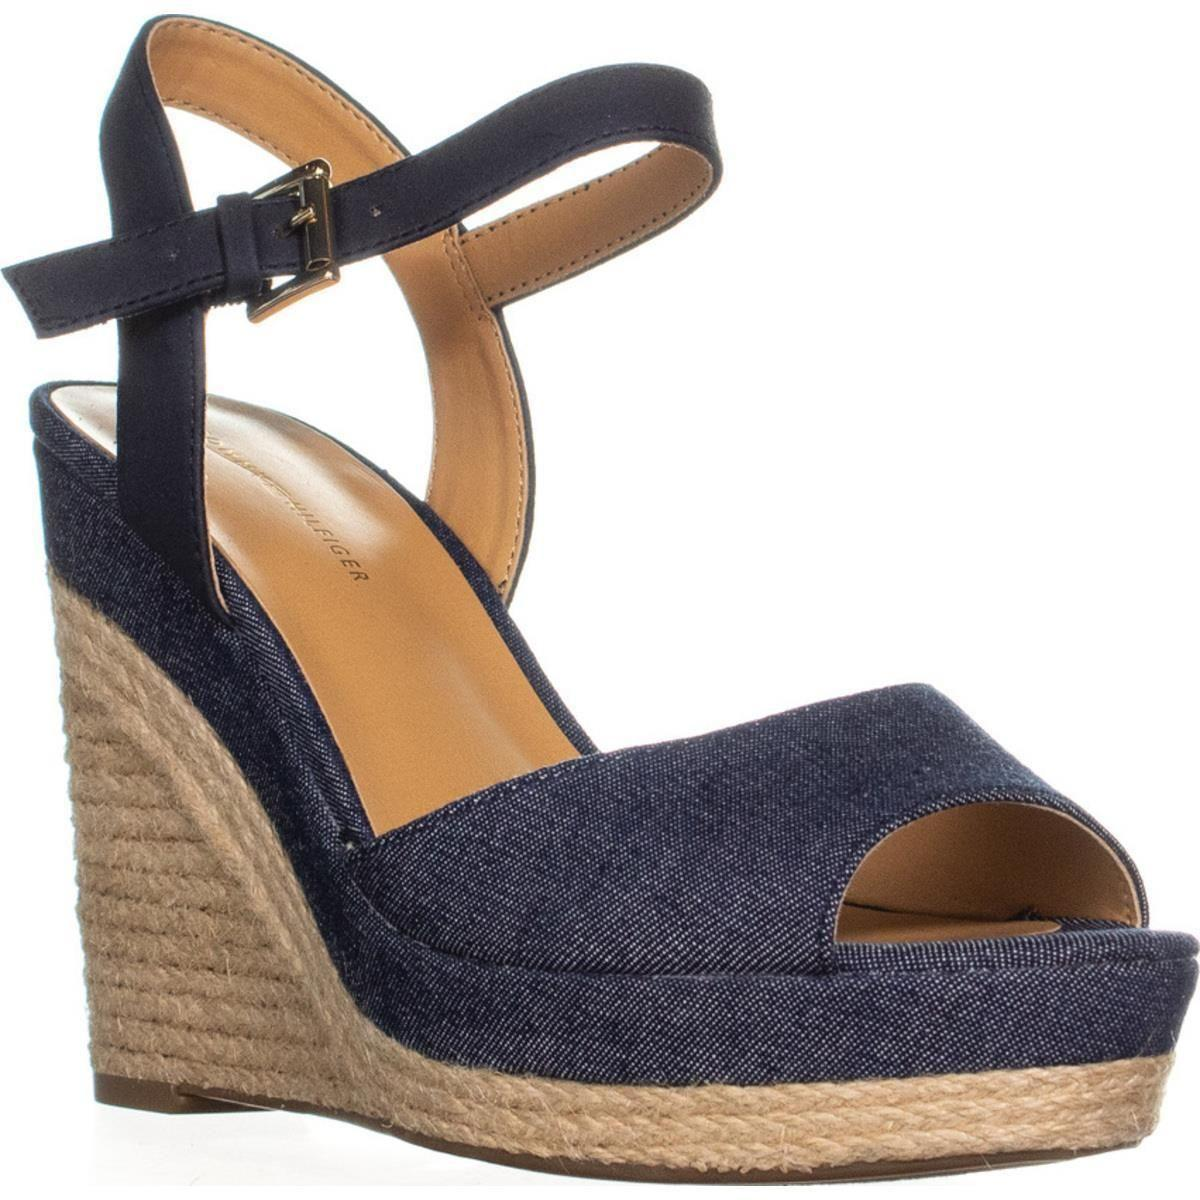 253e19cc Lyst - Tommy Hilfiger Kali Peep Toe Wedge Sandals in Blue